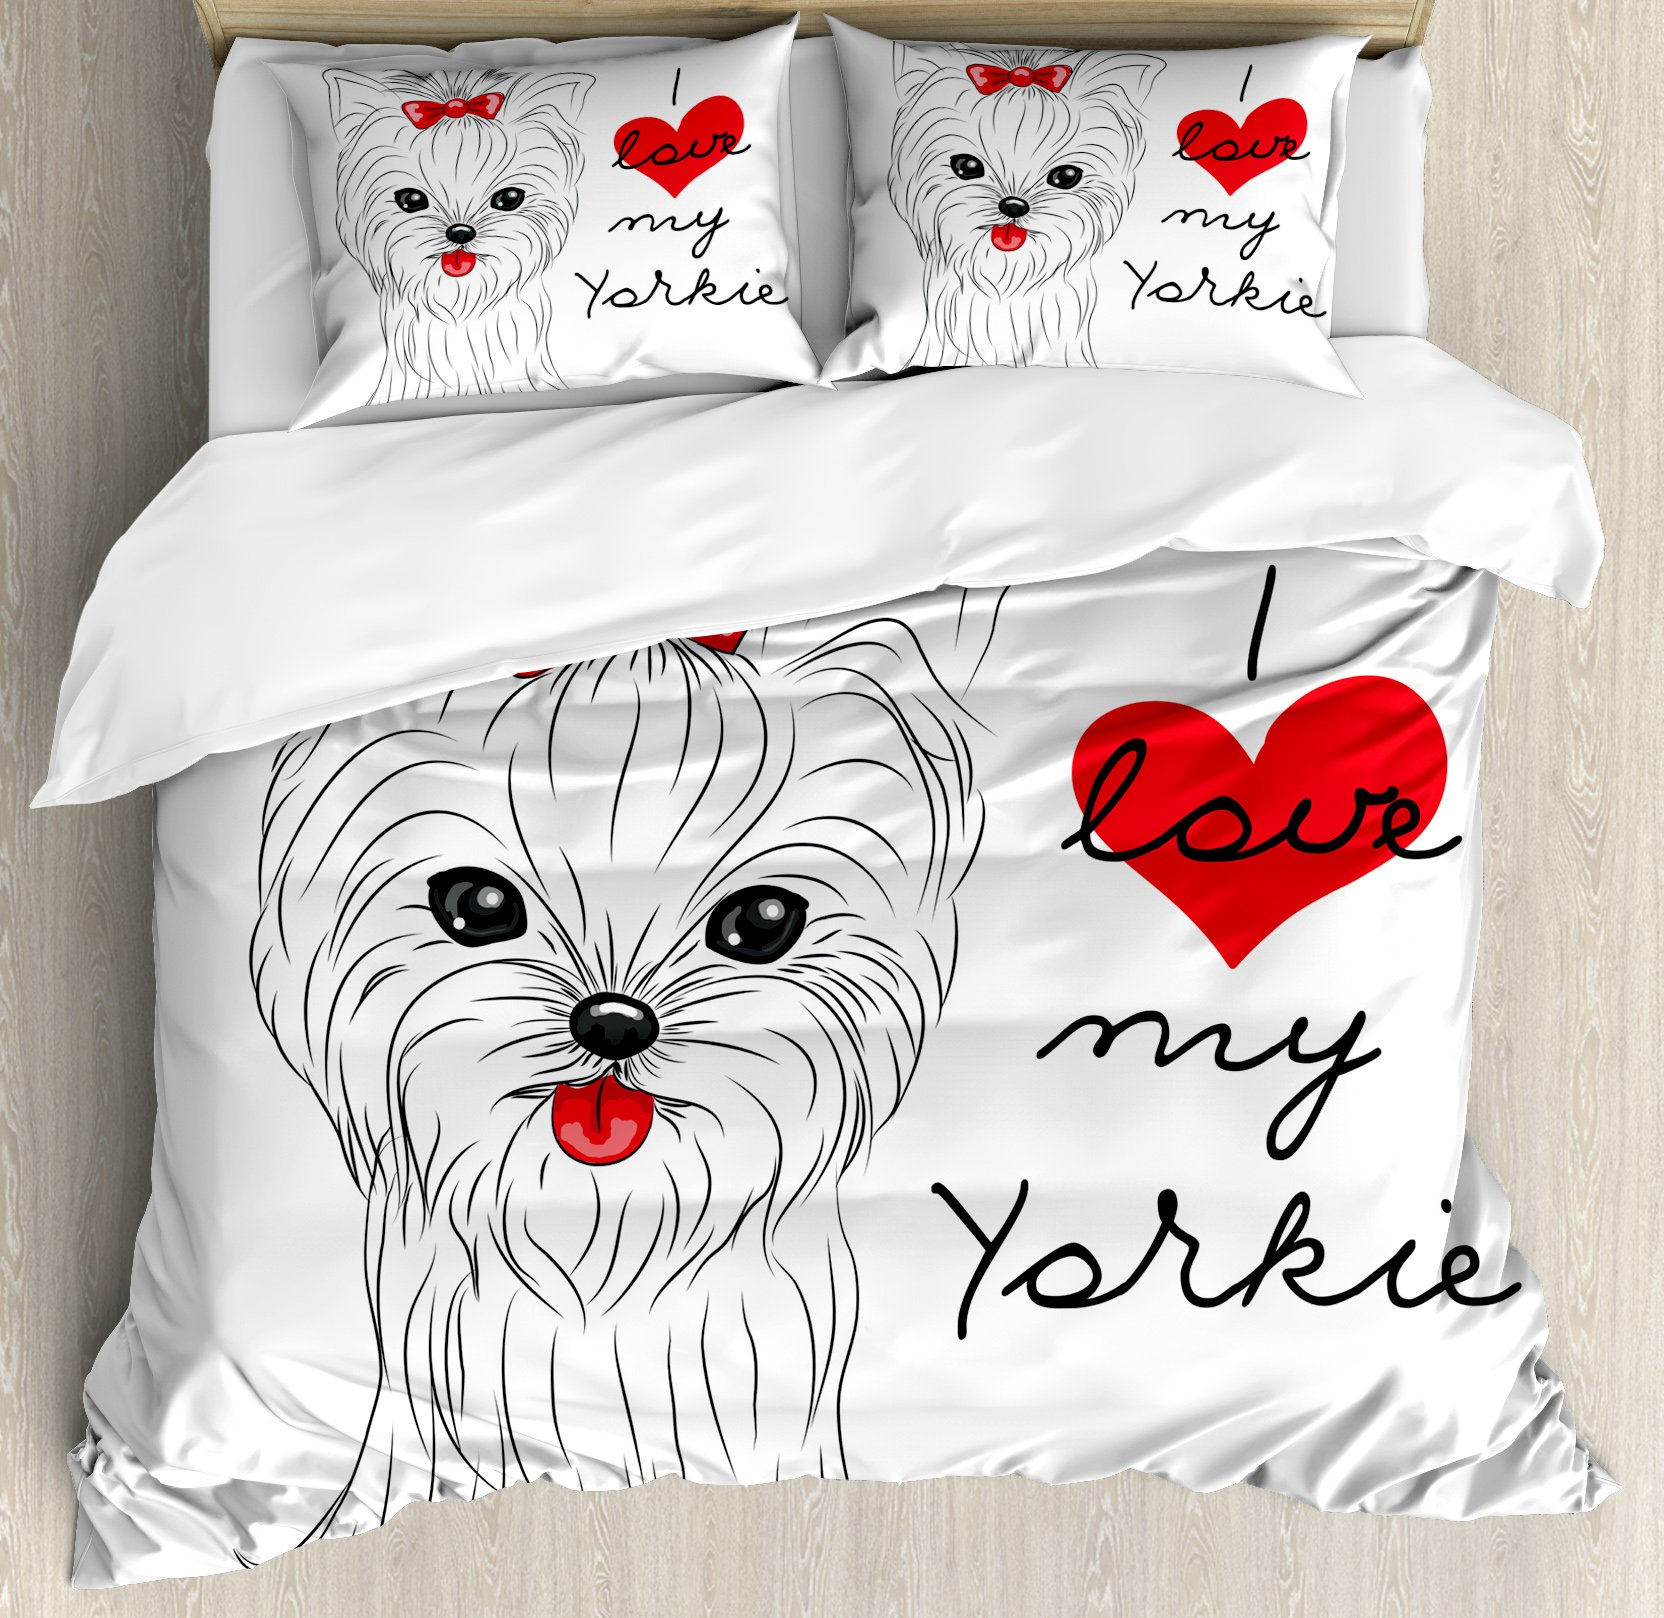 Yorkie Duvet Cover Set Queen Size by Ambesonne, I Love My Yorkie Cute Terrier with its Tounge Out Adorable Yorkshire Terrier, Decorative 3 Piece Bedding Set with 2 Pillow Shams, Black White Red